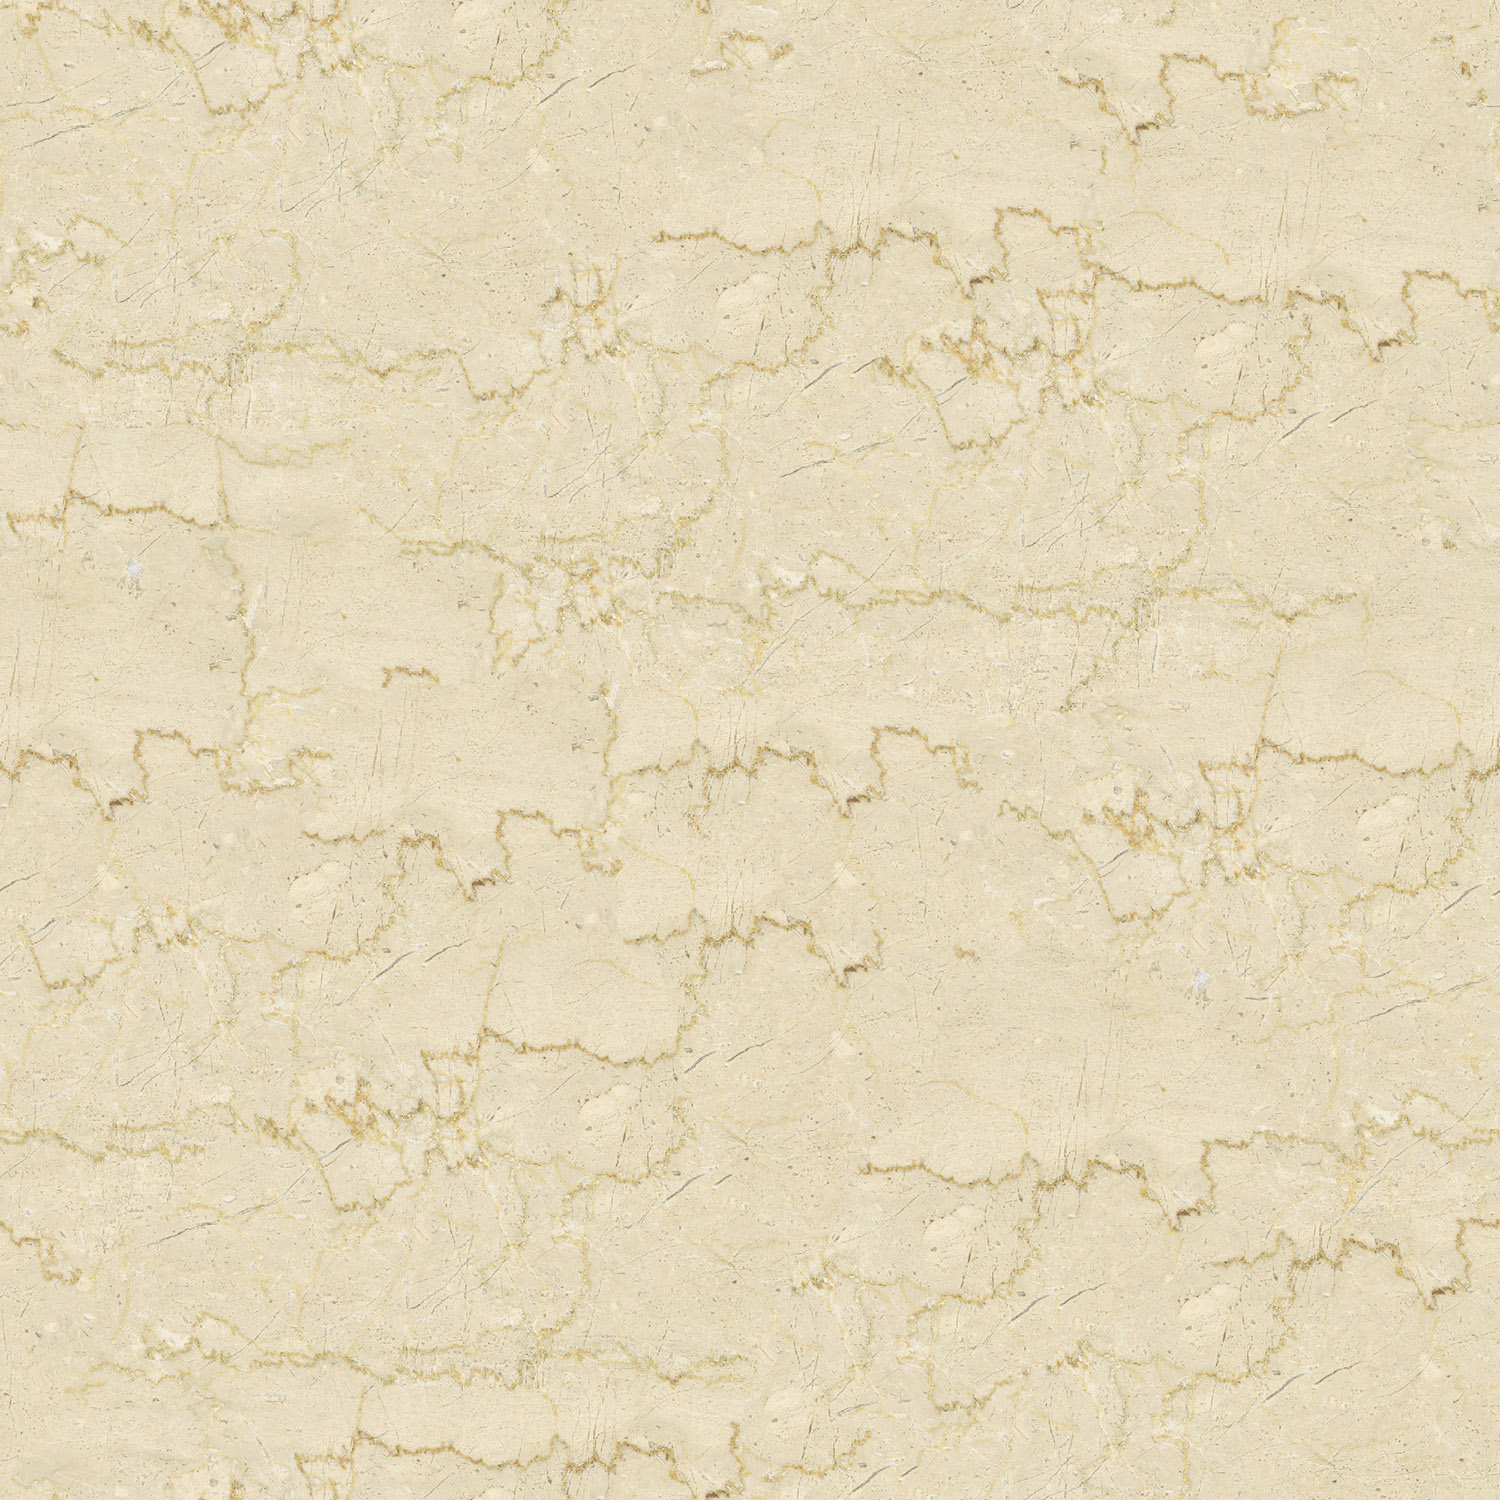 Italian Marble Beige Is Highly In Demand Now A Days Multinational Companies They Believe That Its Finishing Stays For Lifelong Than Any Other